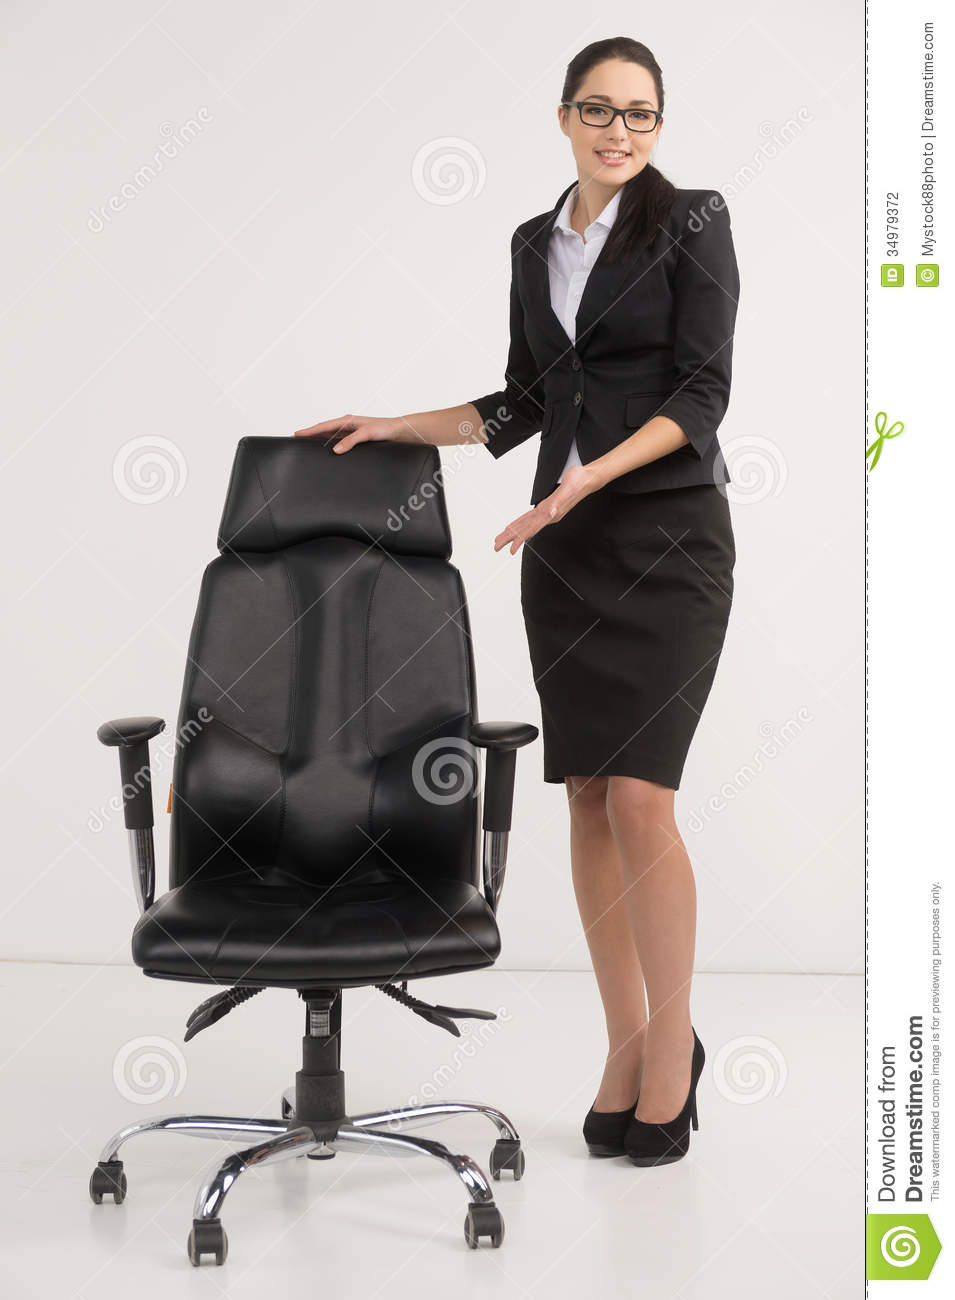 beautiful businesswoman inviting to apply for vacant stylish office chairs uk stylish office chairs uk